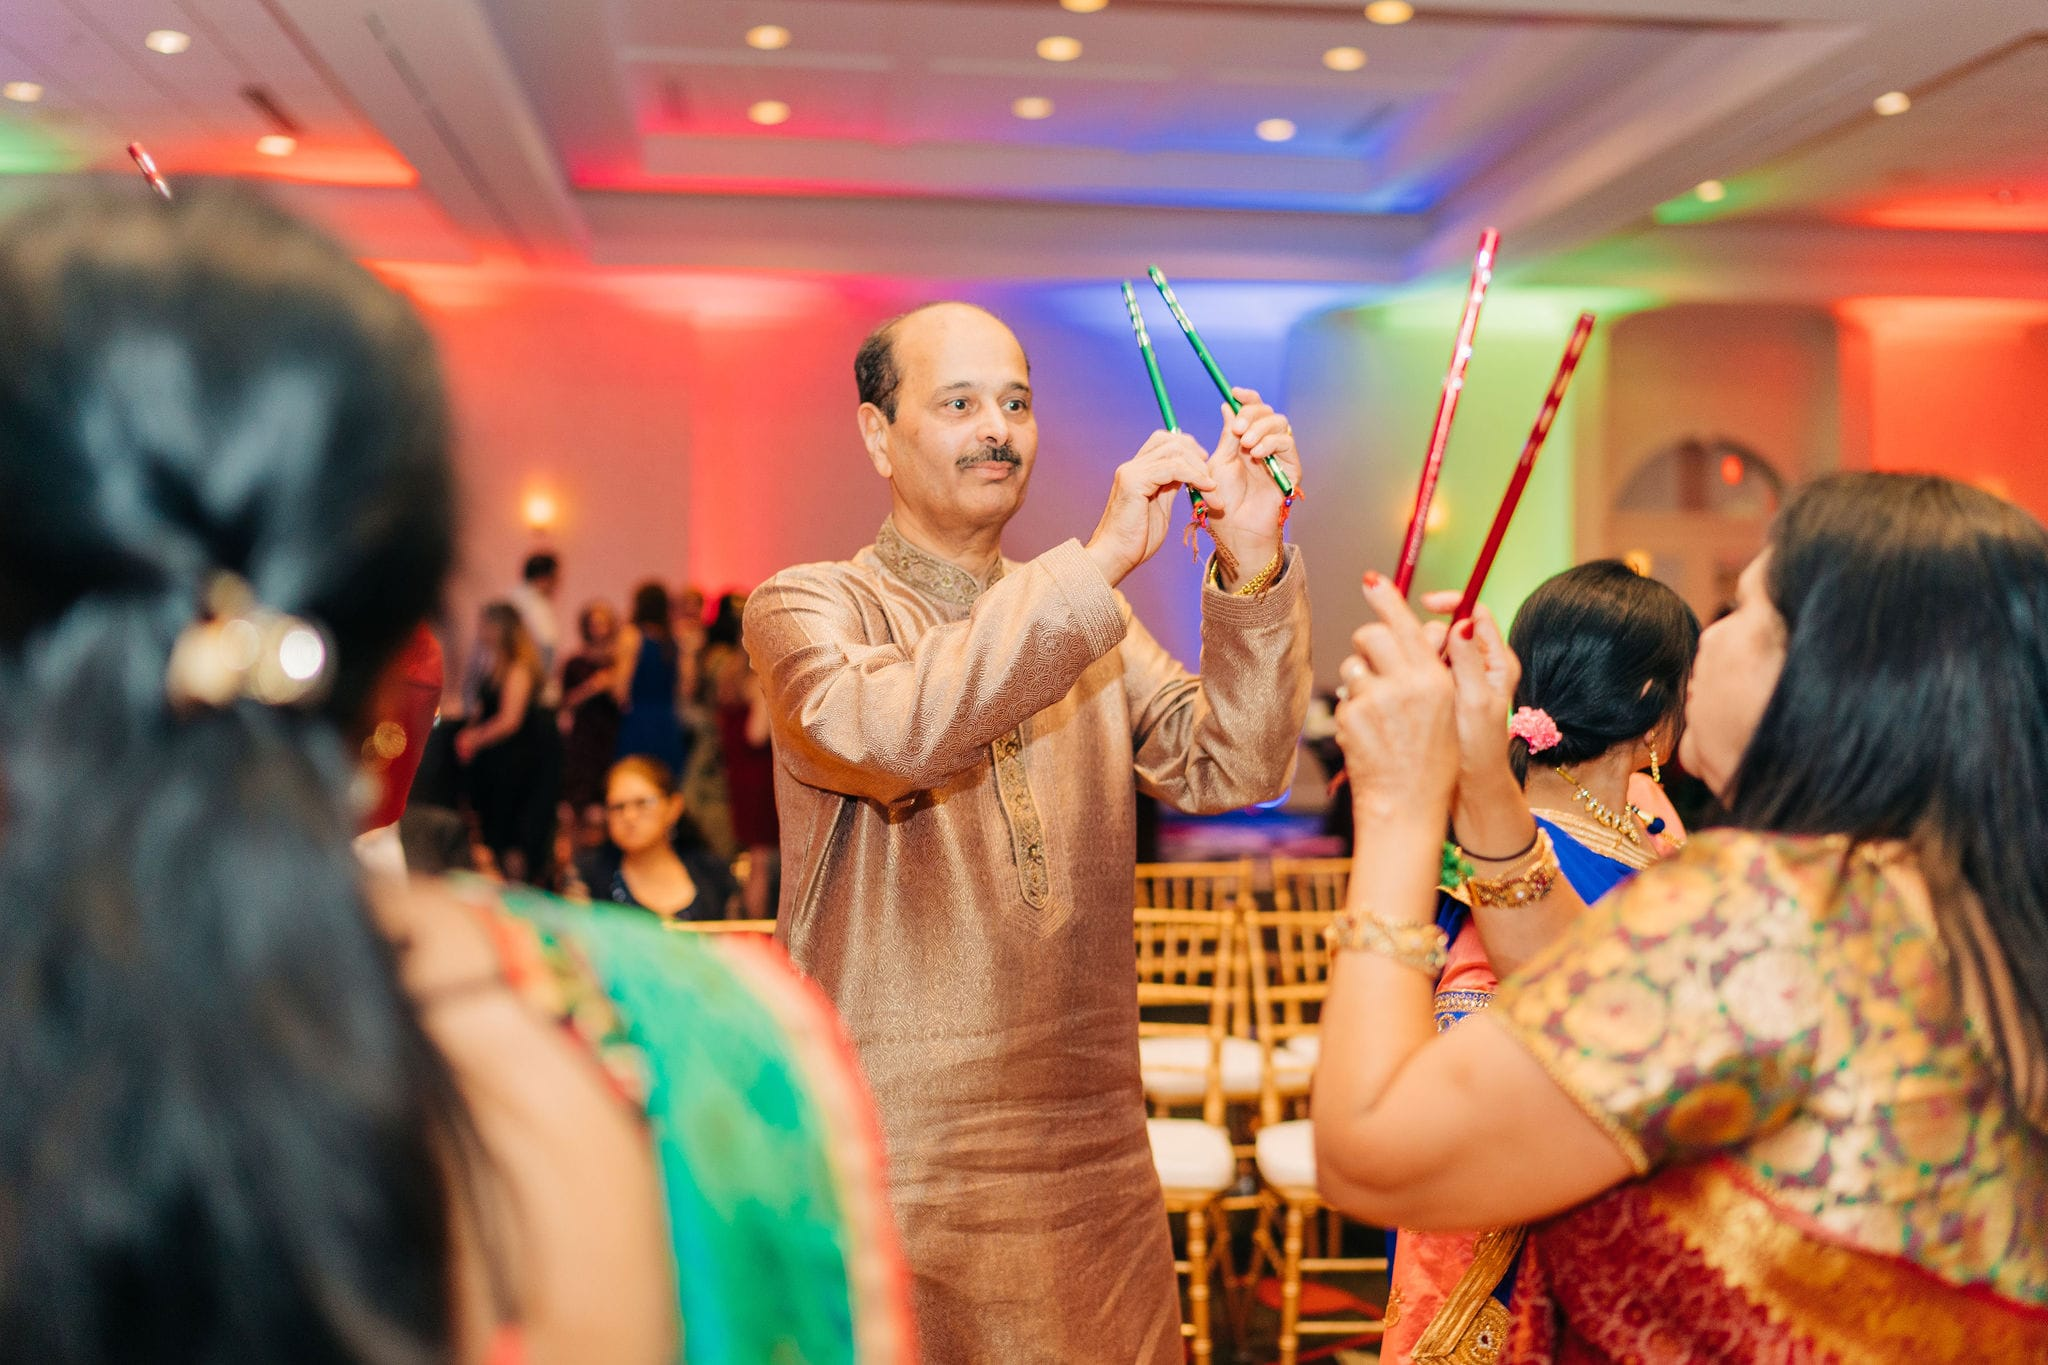 indian-wedding-los-angeles-photographer-076.jpg